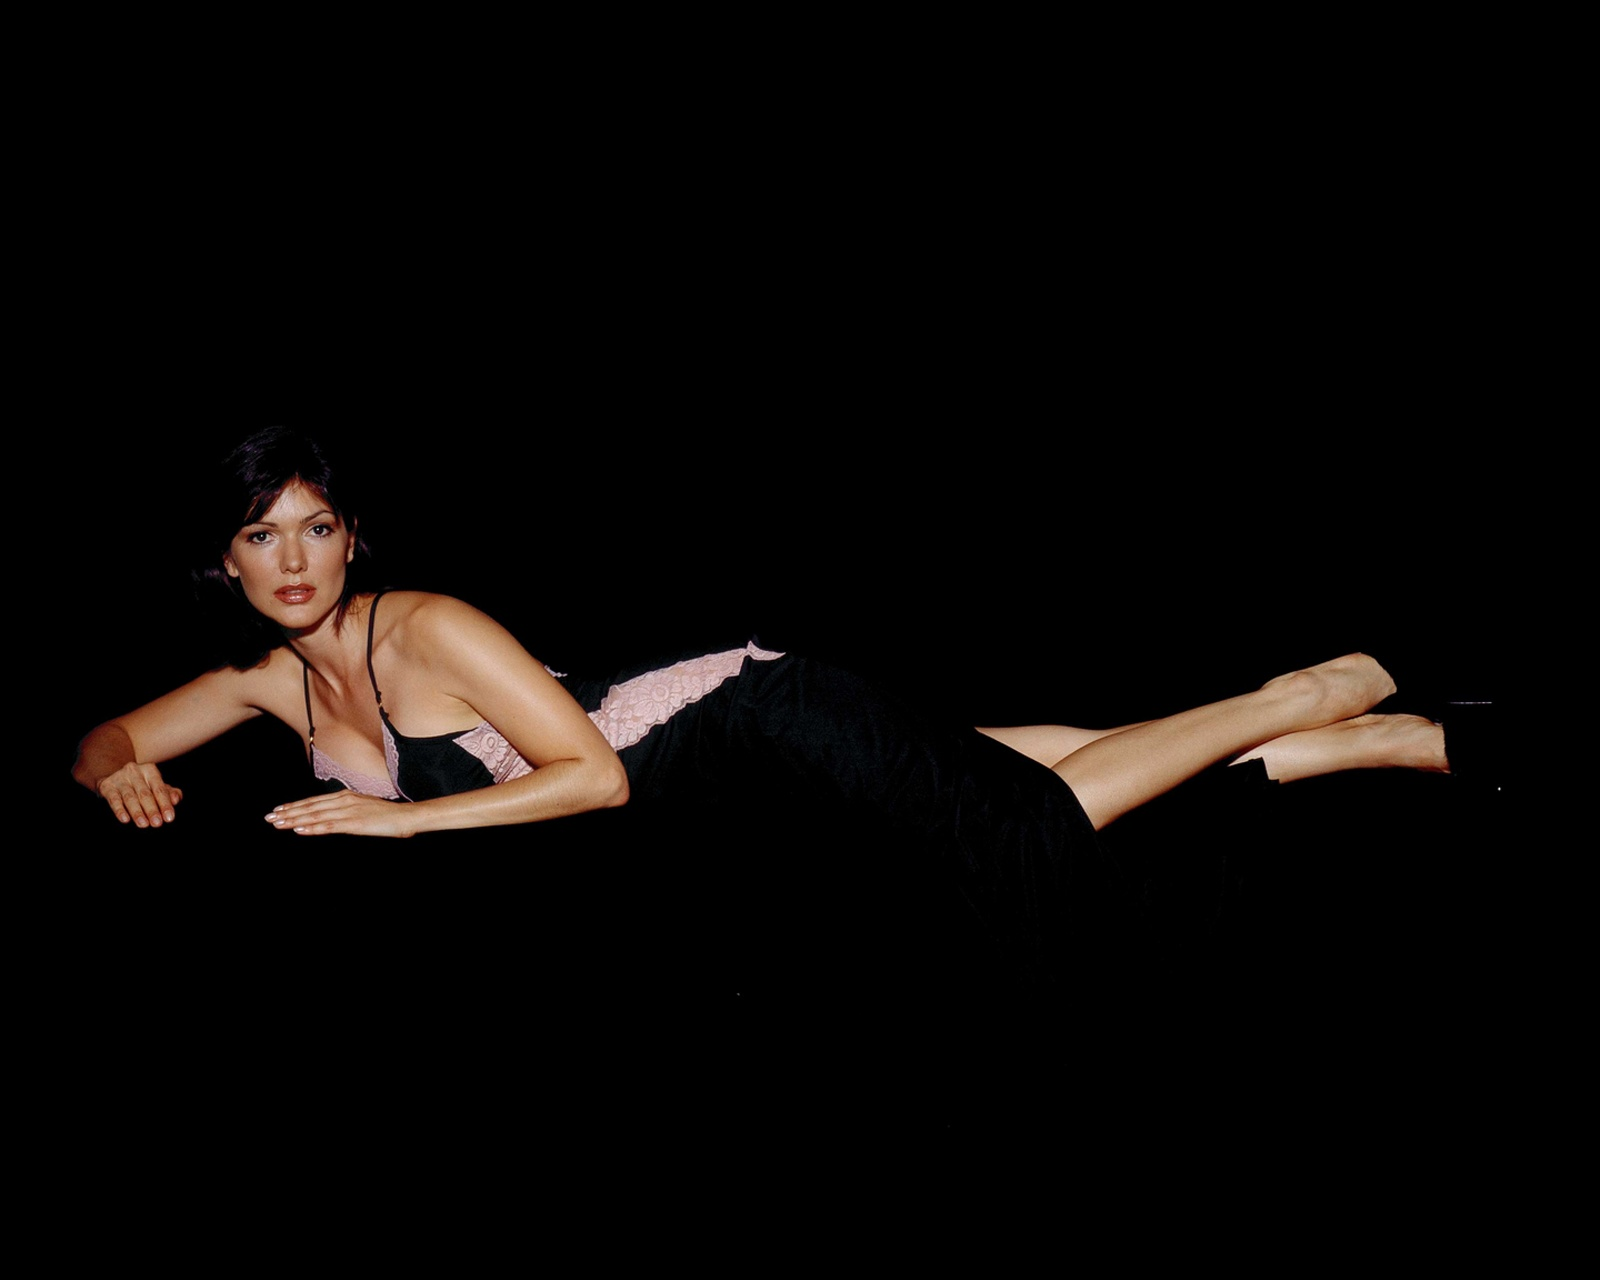 All Laura Harring wallpapers